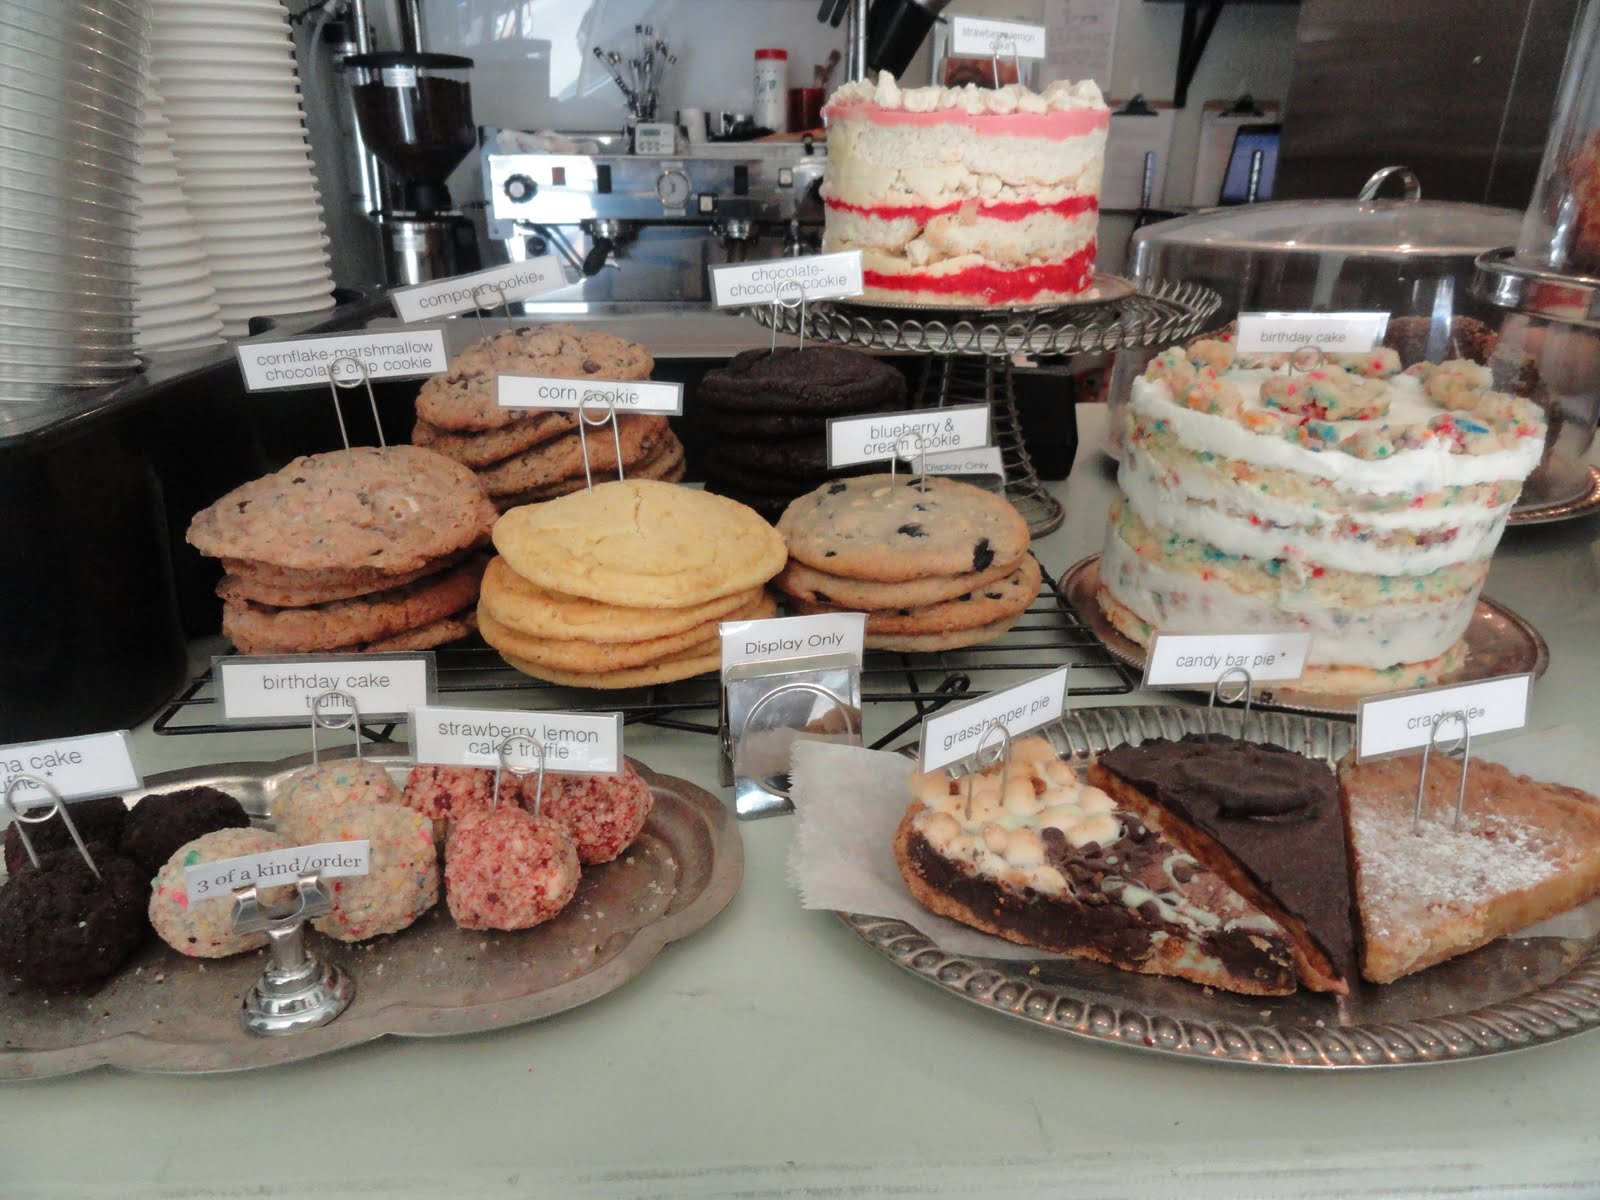 The Baked Goods All Look Very Appealing And I Tried Some Of Cookies Cake Truffles Corn Bread Everything Was Fresh Lasted Well For A